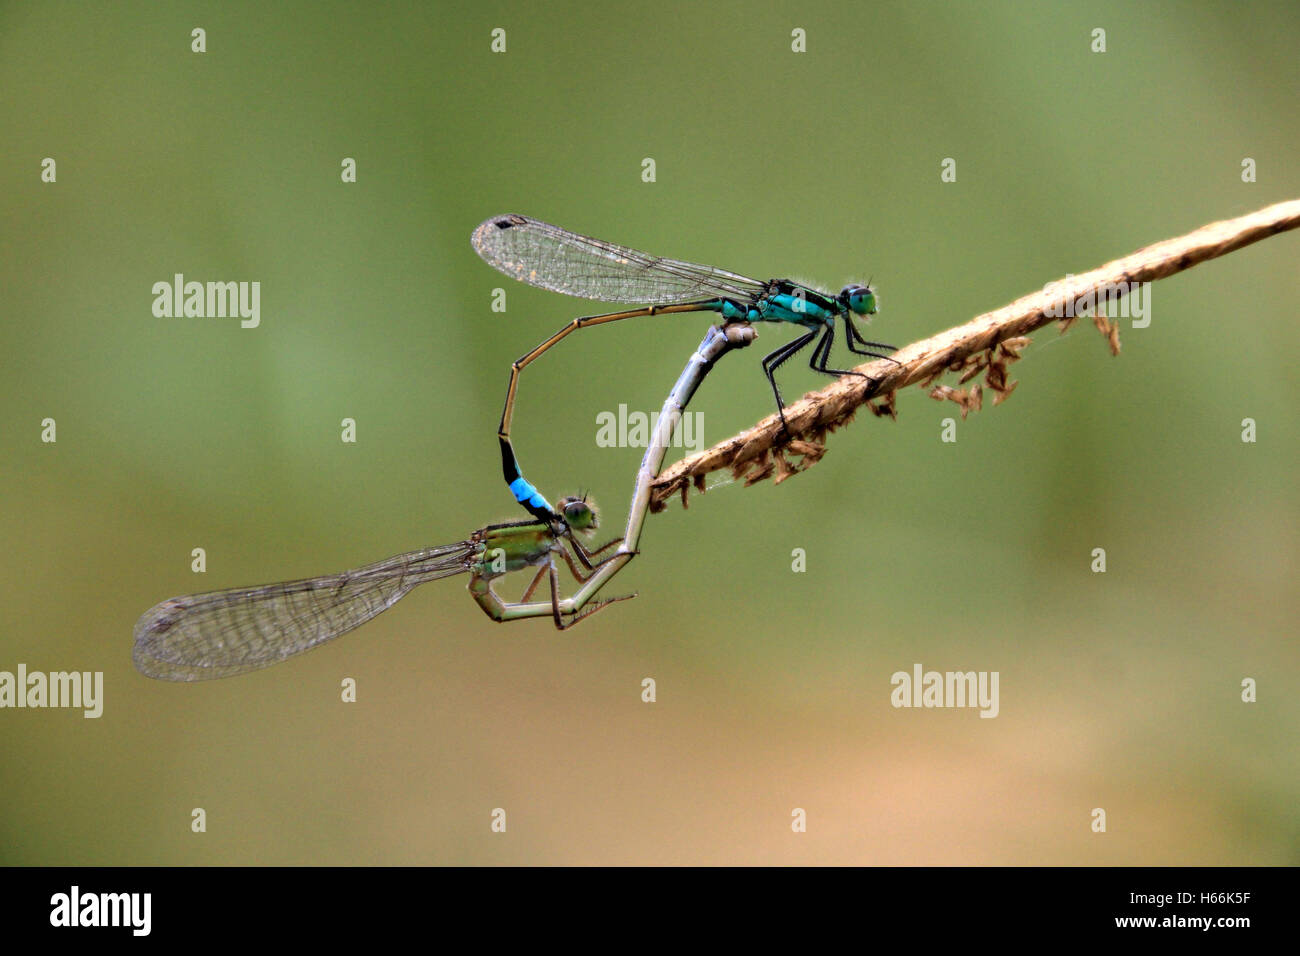 Two blue green dragonflies mating - Stock Image